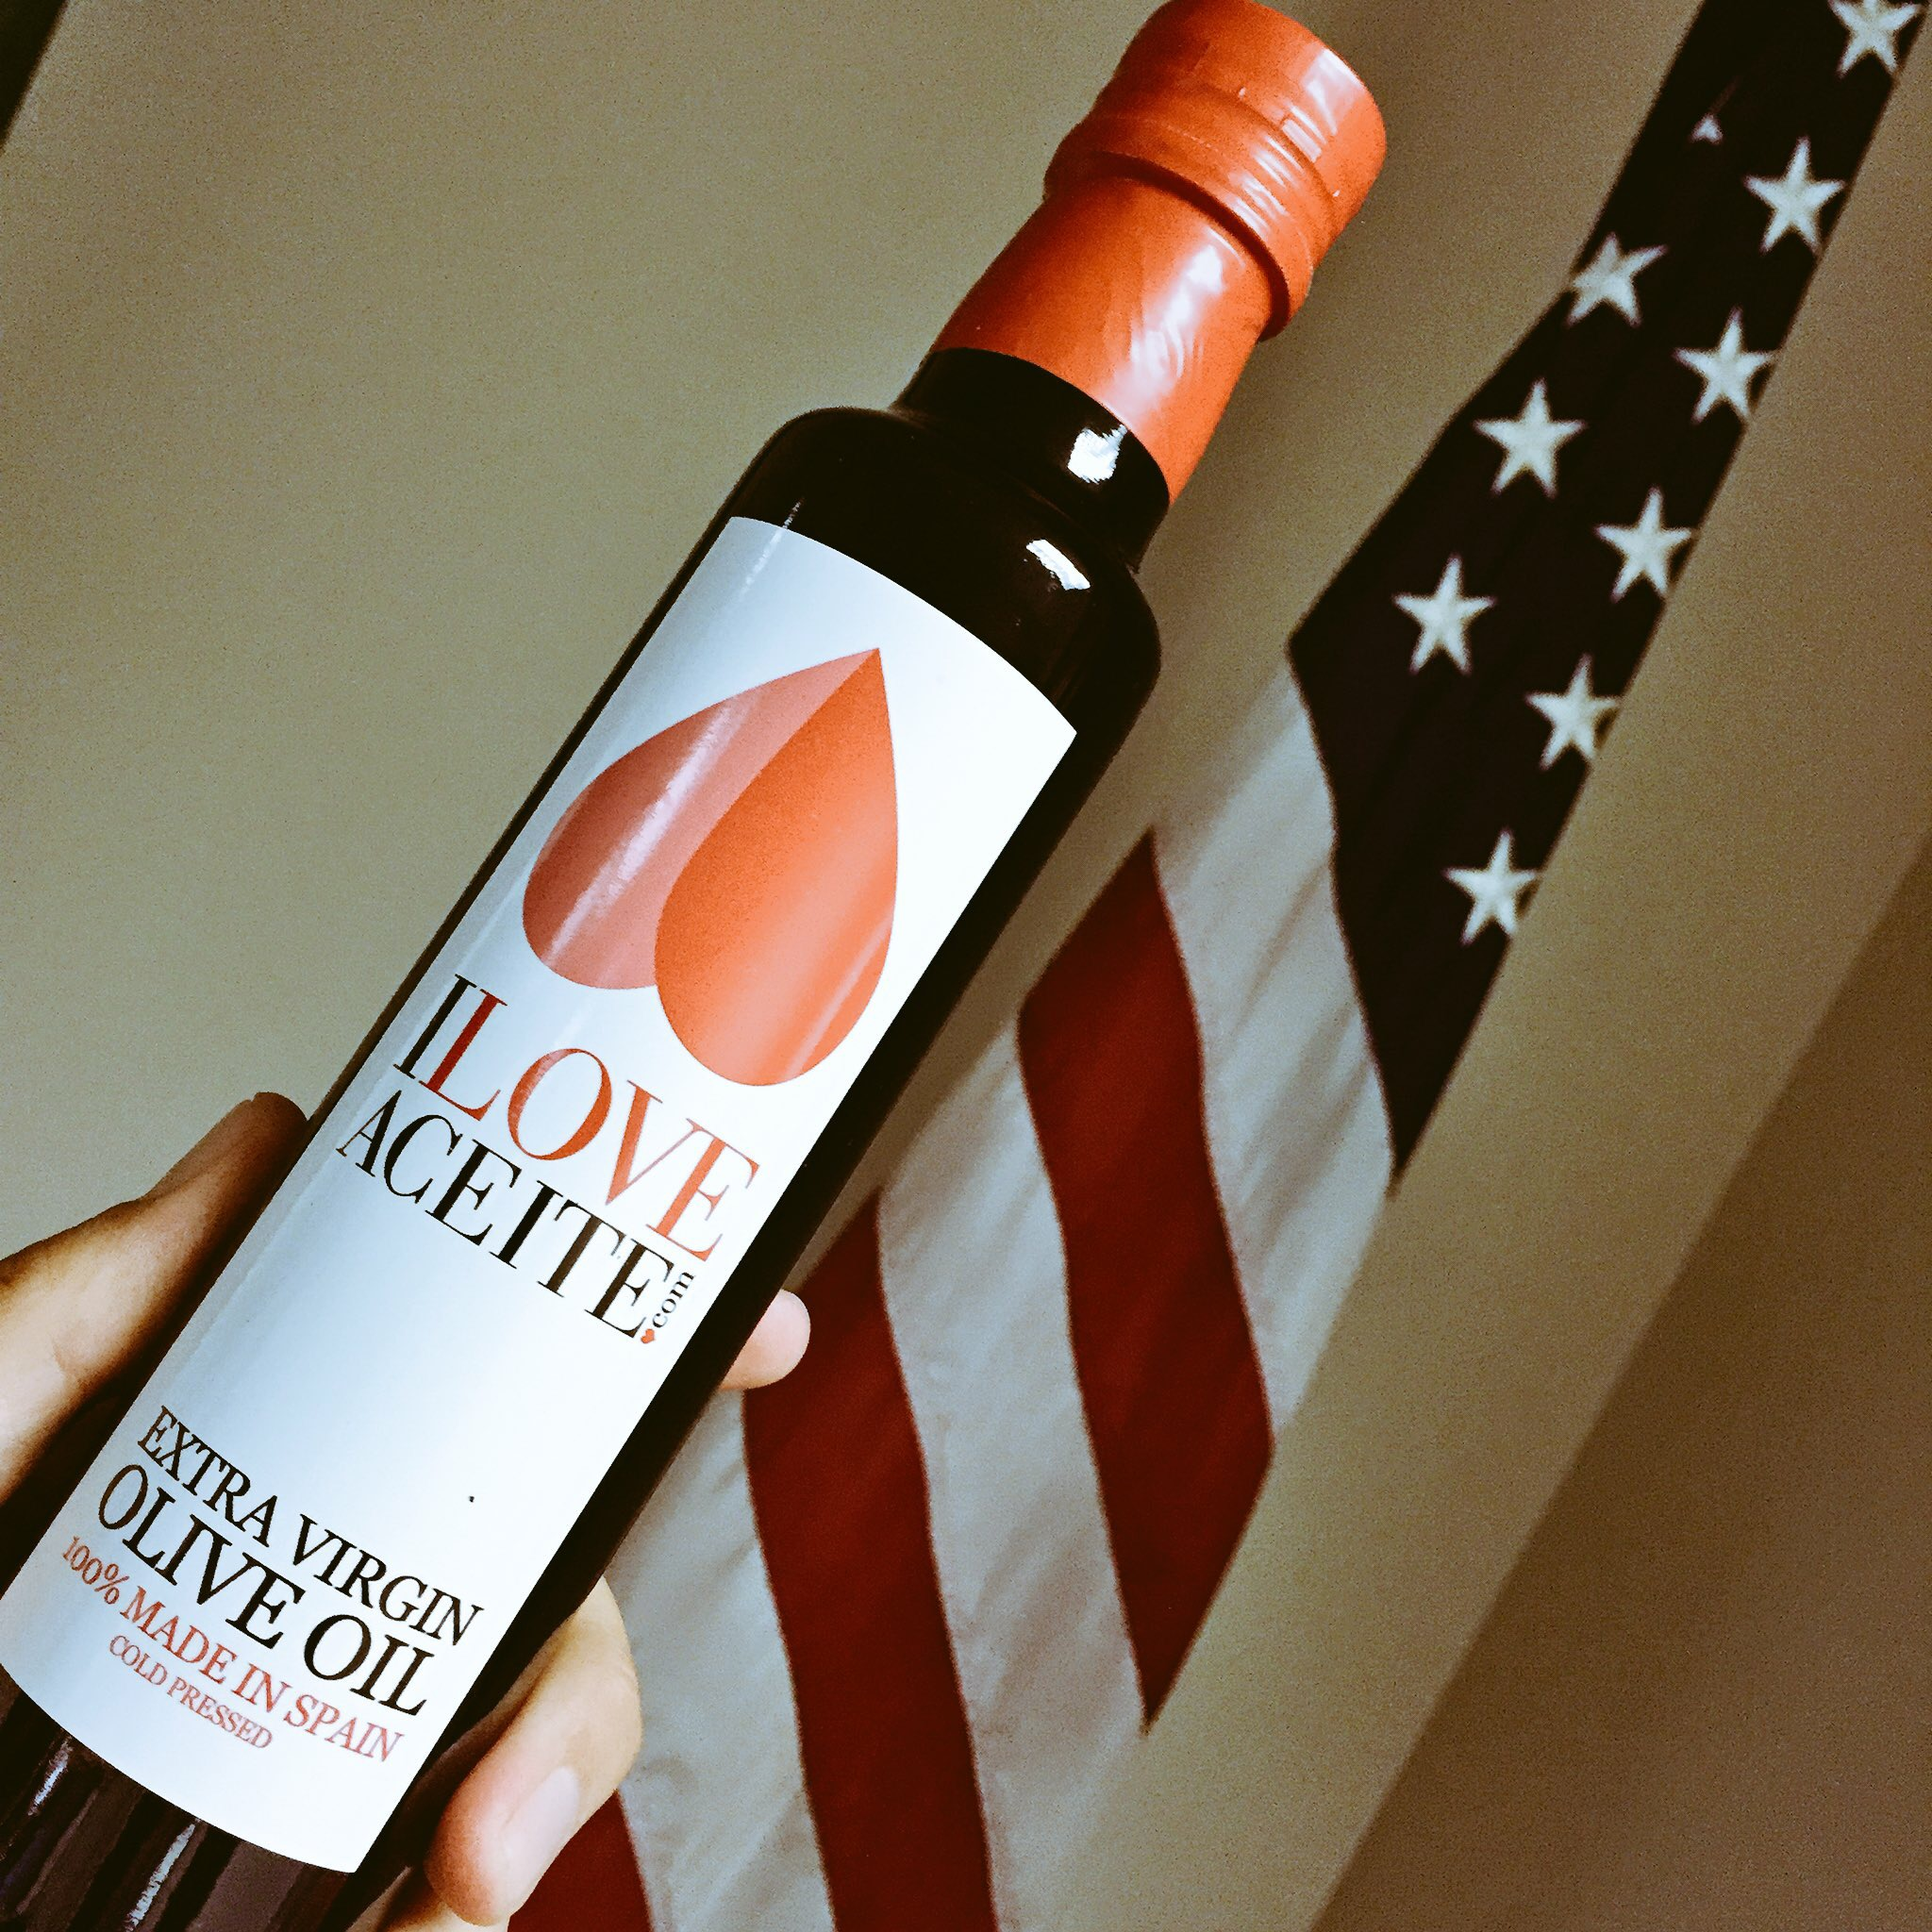 ILOVEACEITE US using San Antonio as its base to work in the US market